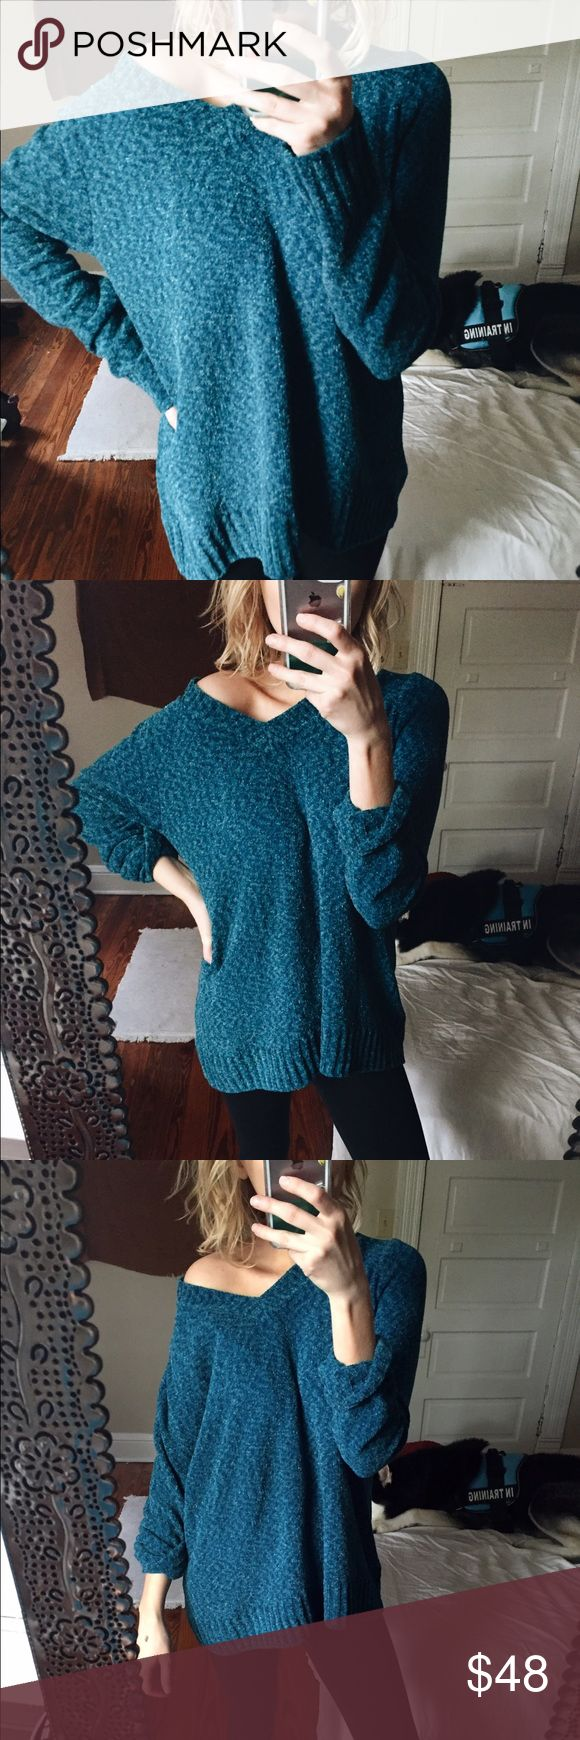 for Kristin – Esmeralda slub knit This is a beautiful velvety cardigan in a teal/turquoise color + sweetheart v neckline. Tags: same day shipping. Not UO. Urban Outfitters Sweaters Crew & Scoop Necks